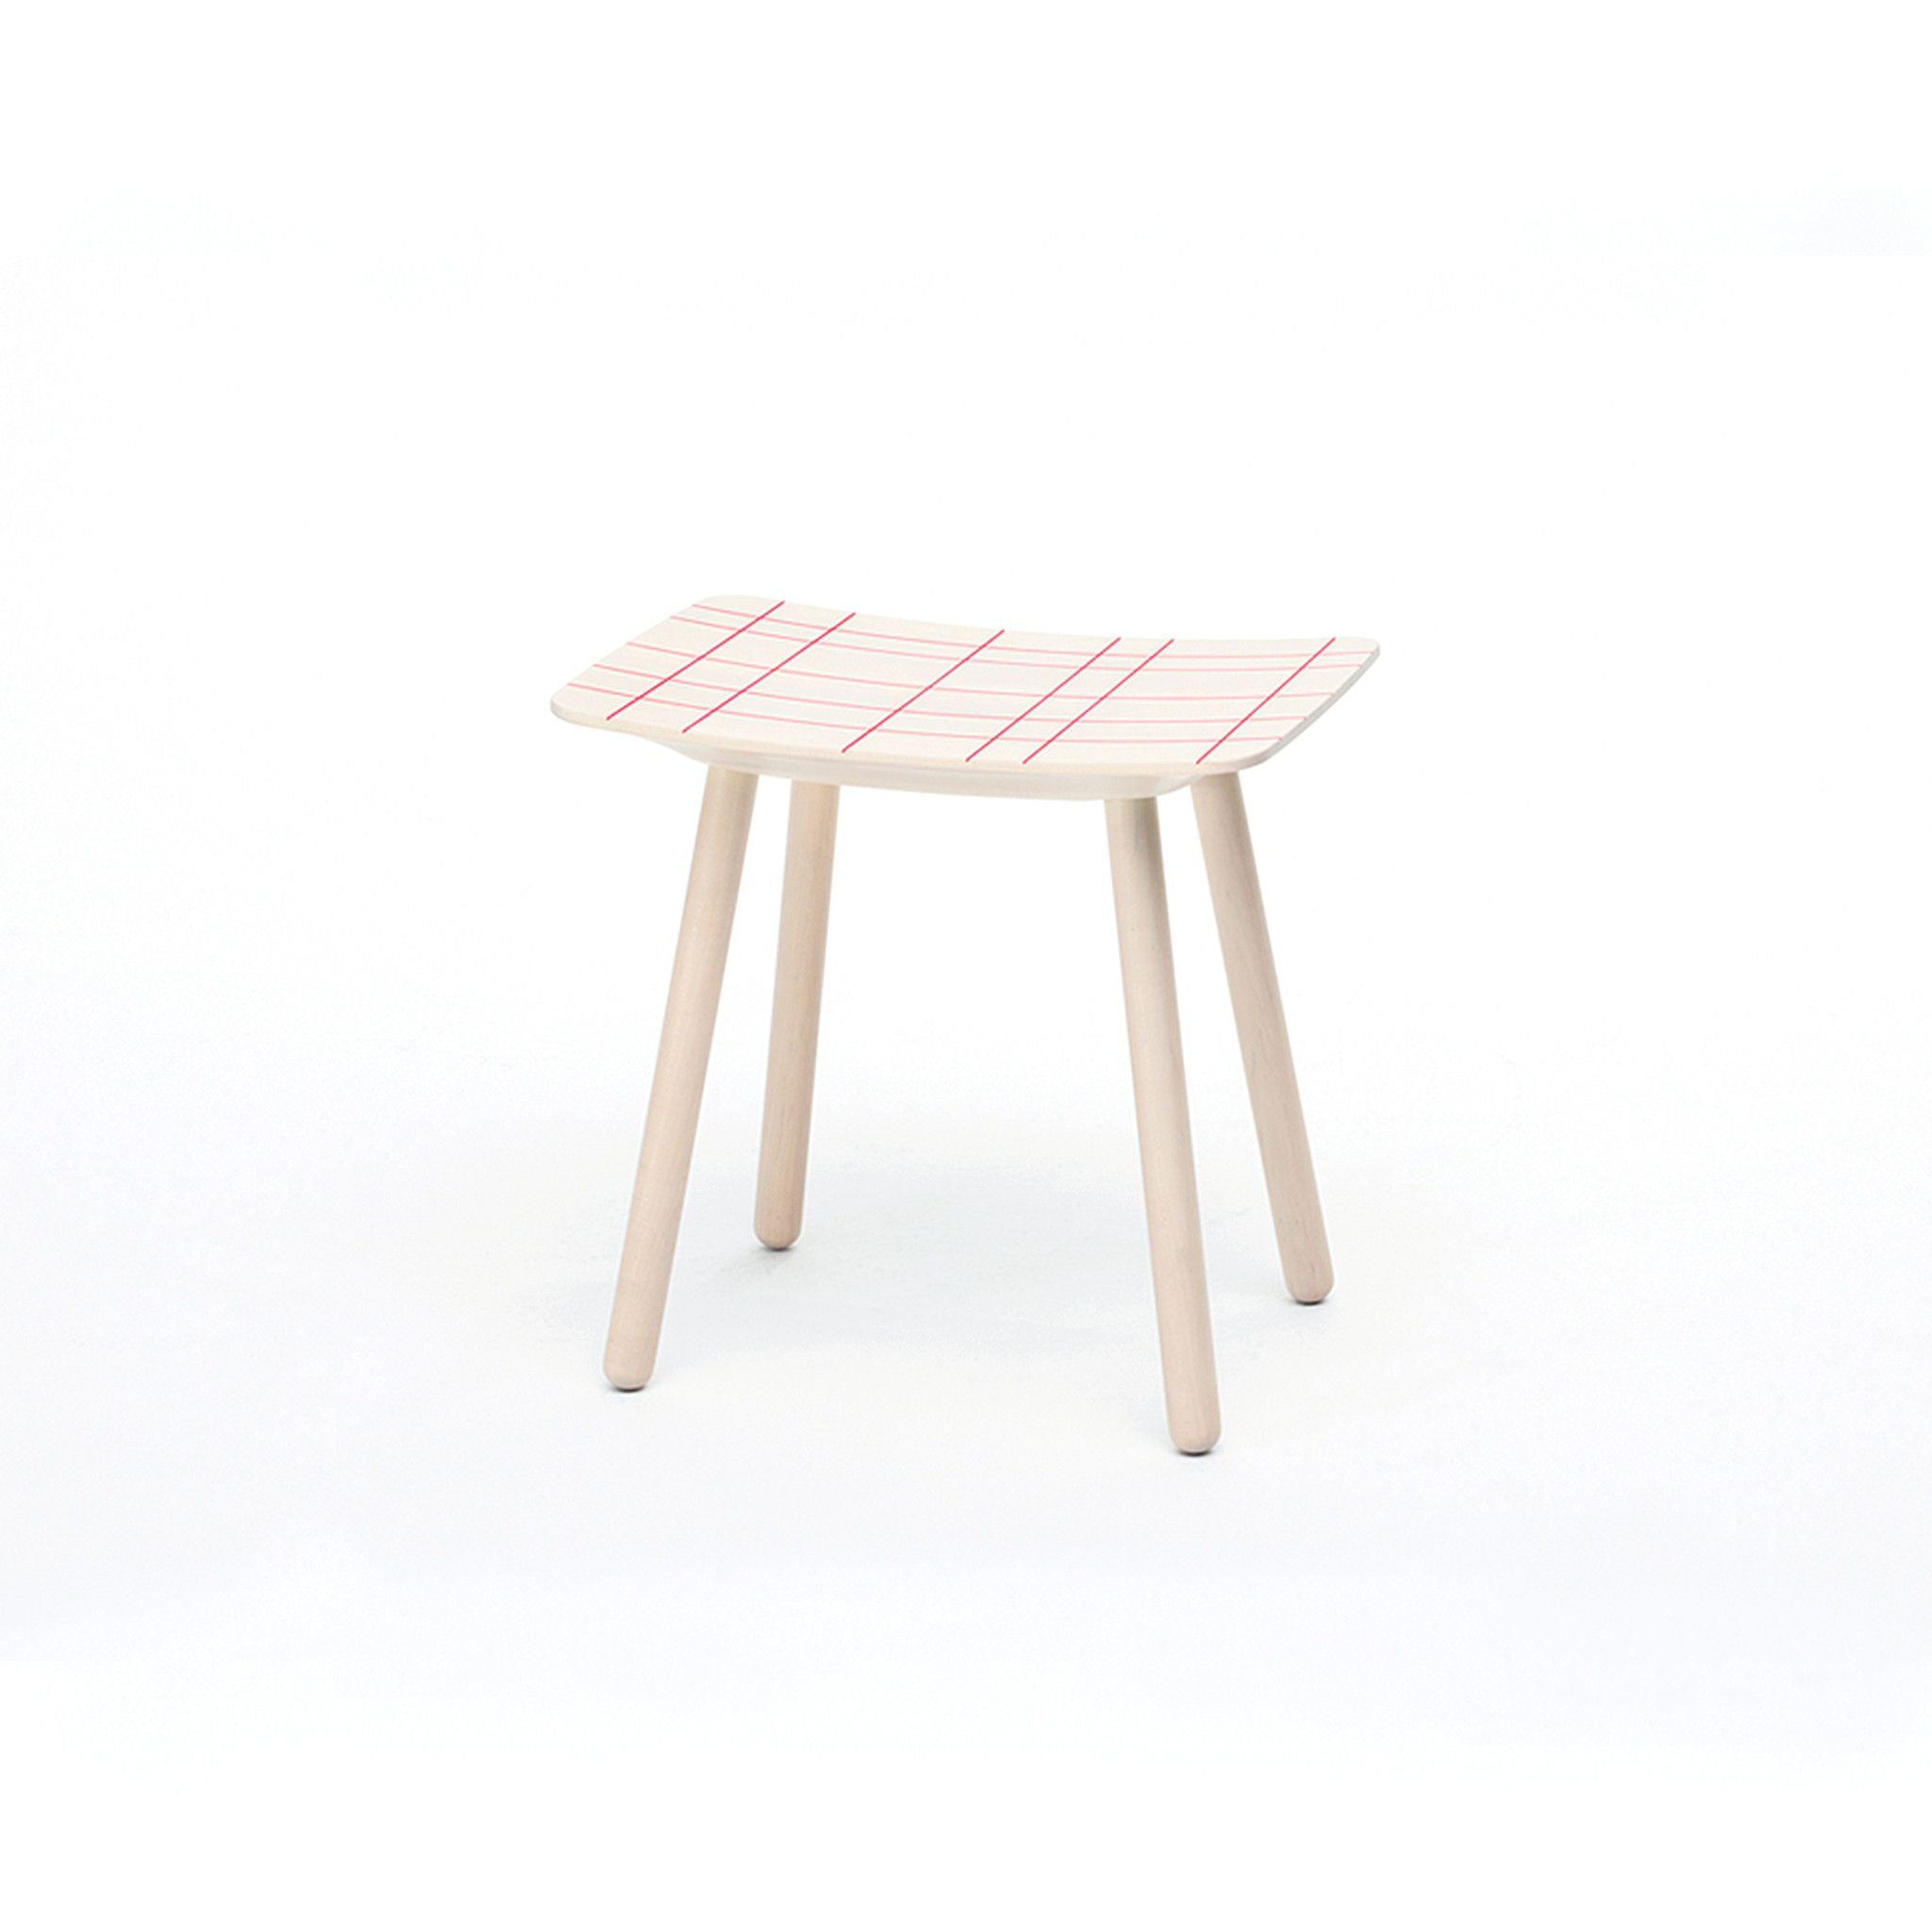 Karimoku New Standard - COLOR STOOL PINK GRID - Stool